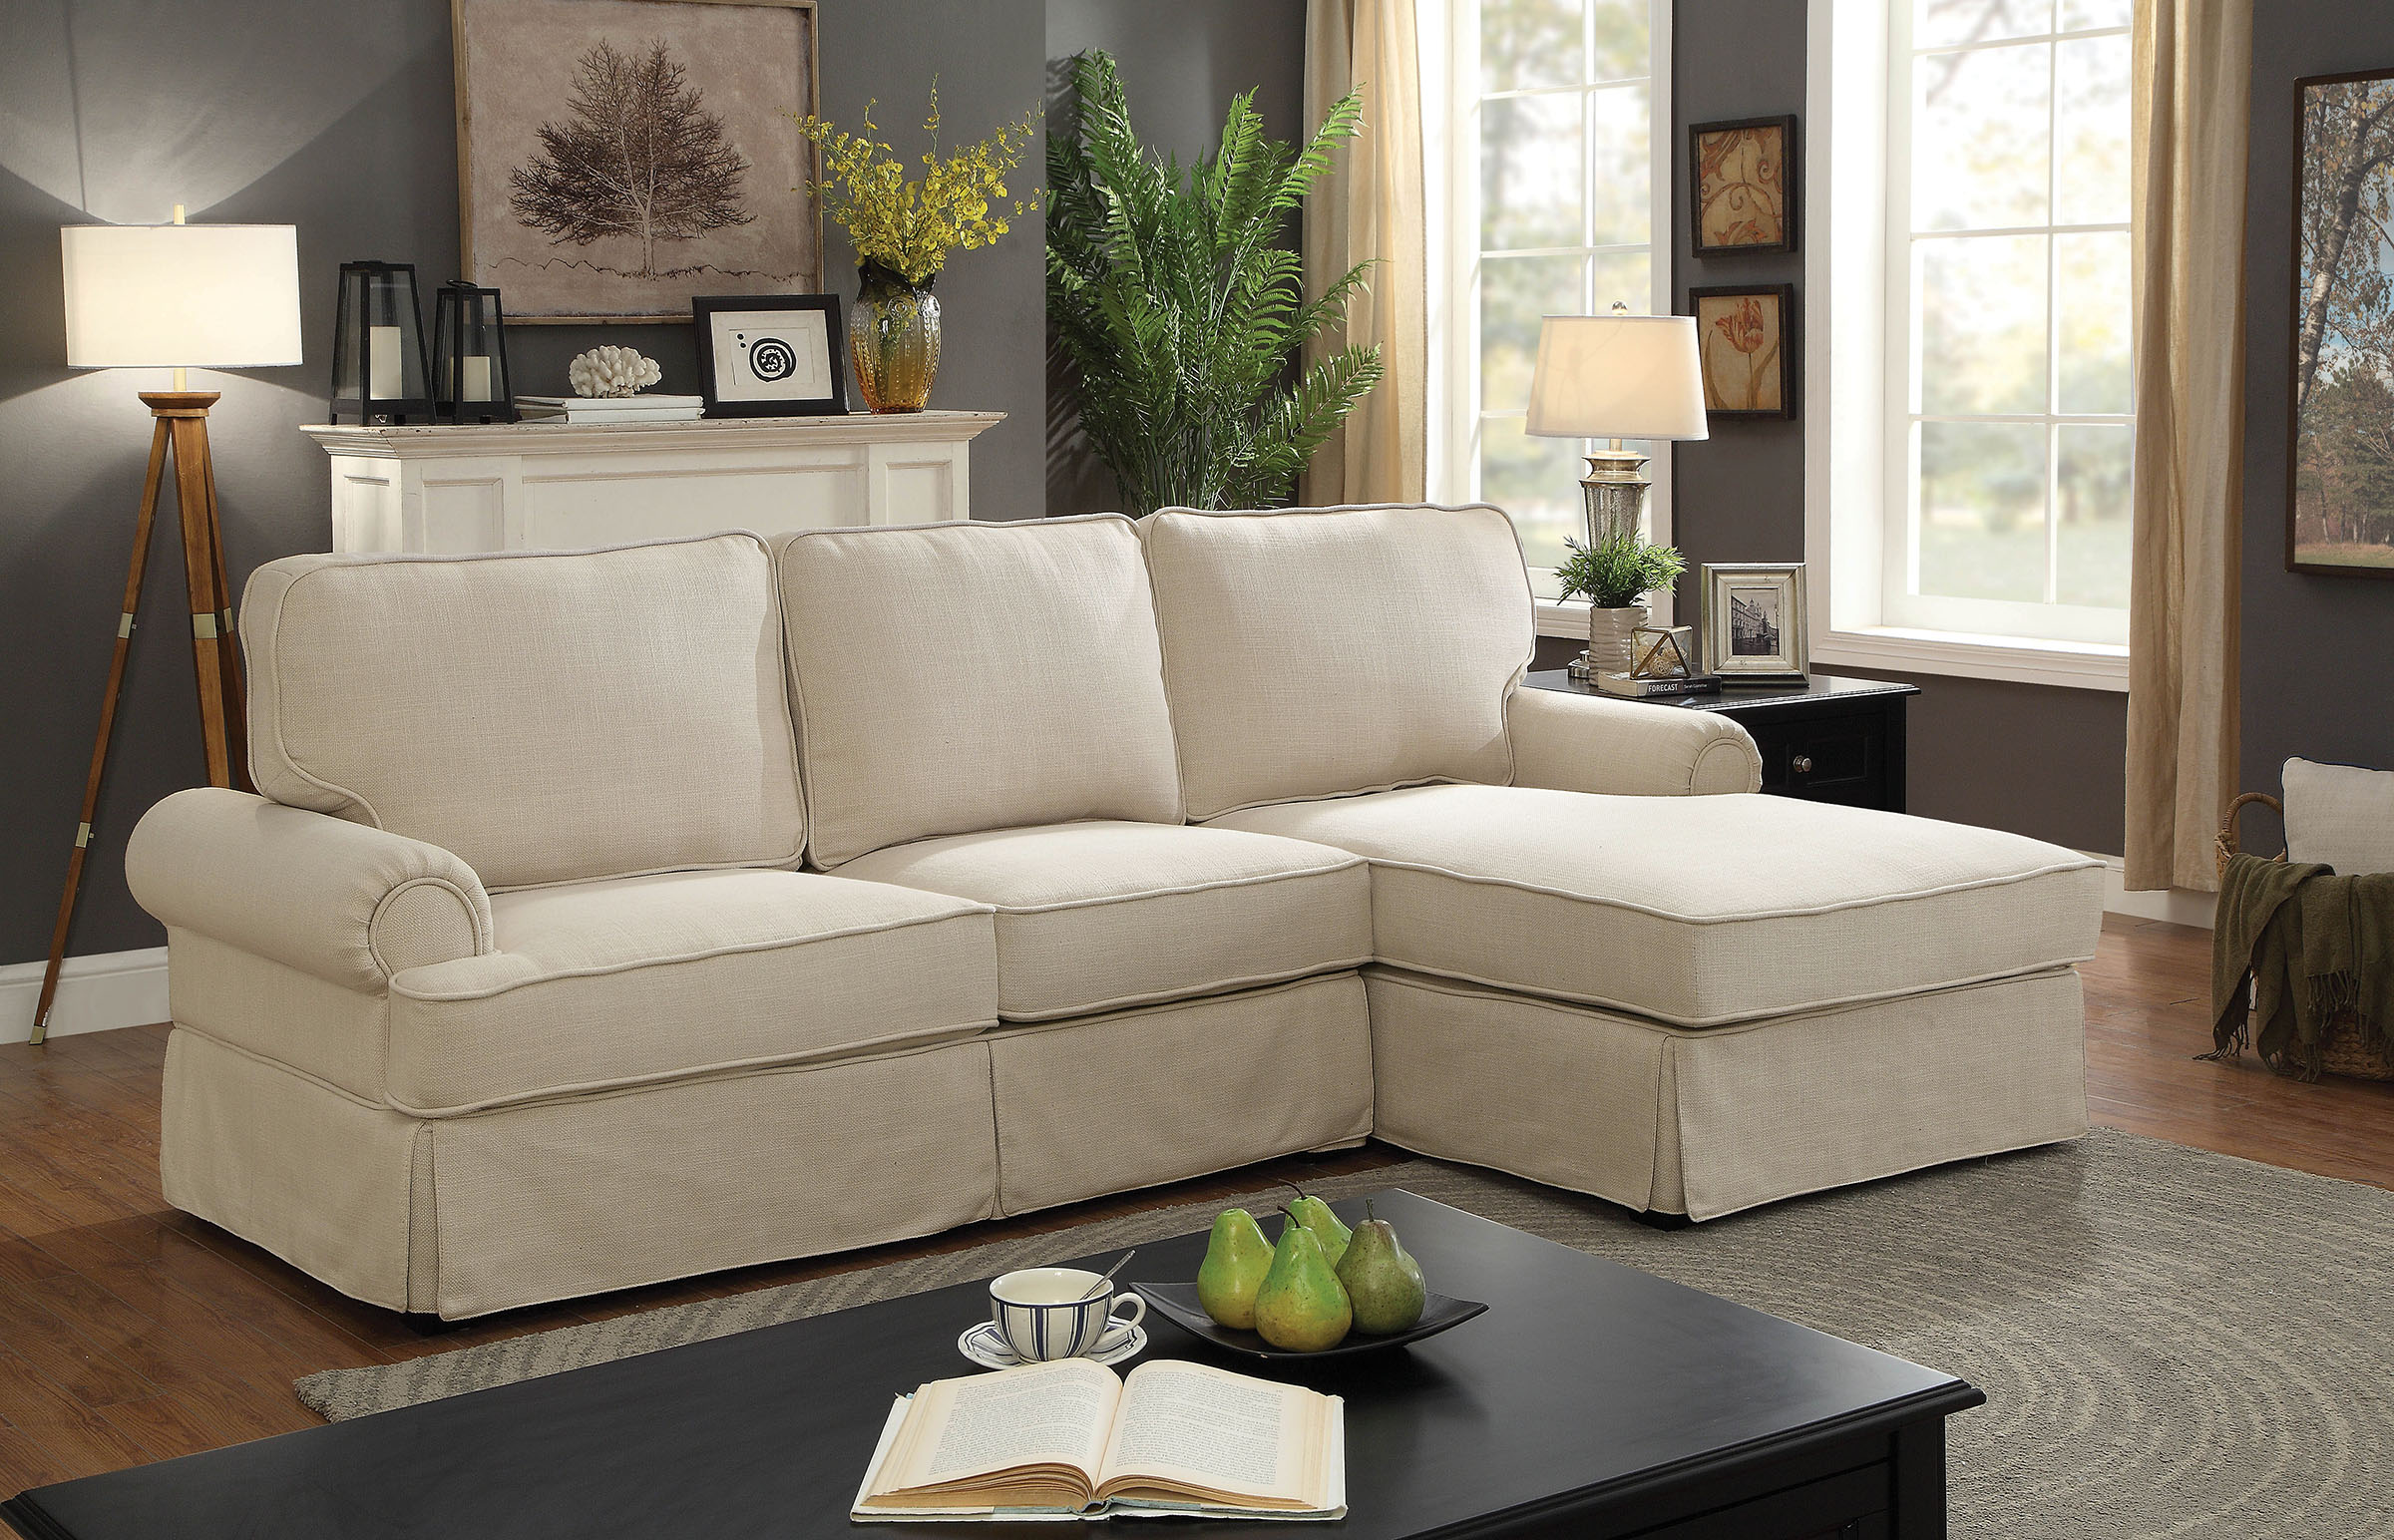 Badalona 6377bg beige rolled arm t cushion sectional for Beige sectional with chaise